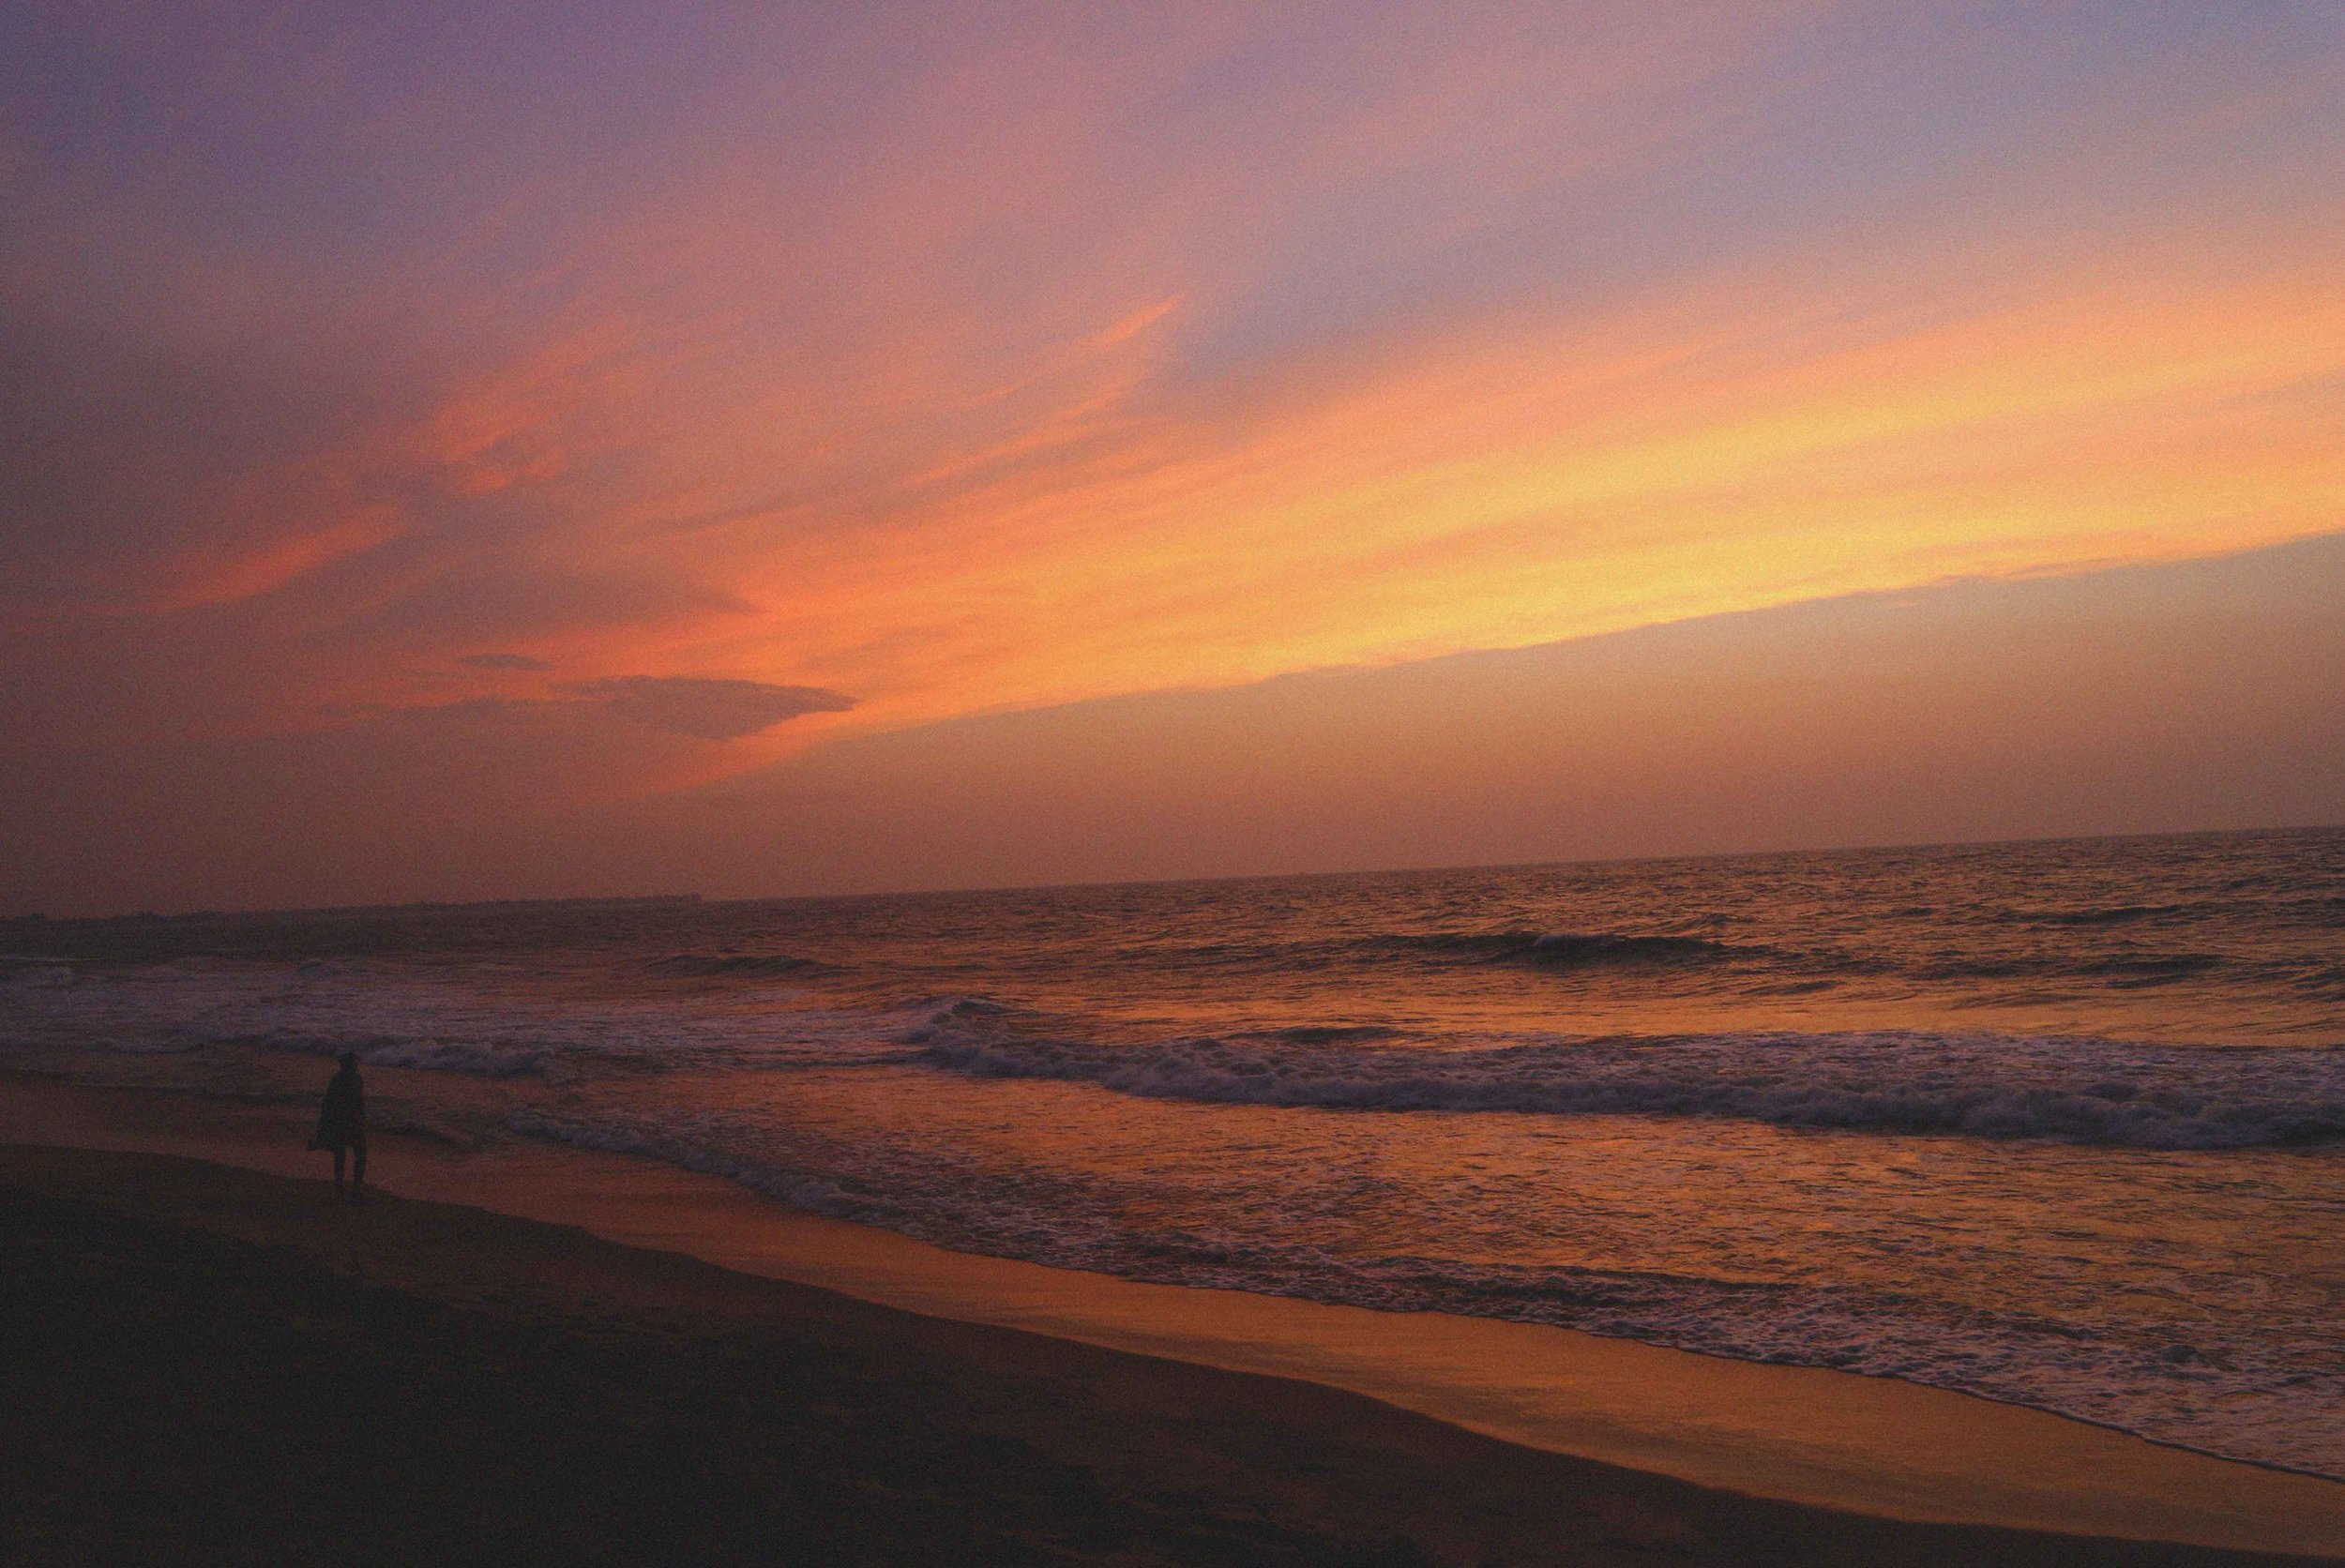 A beautiful sunset at Negombo beach near Colombo